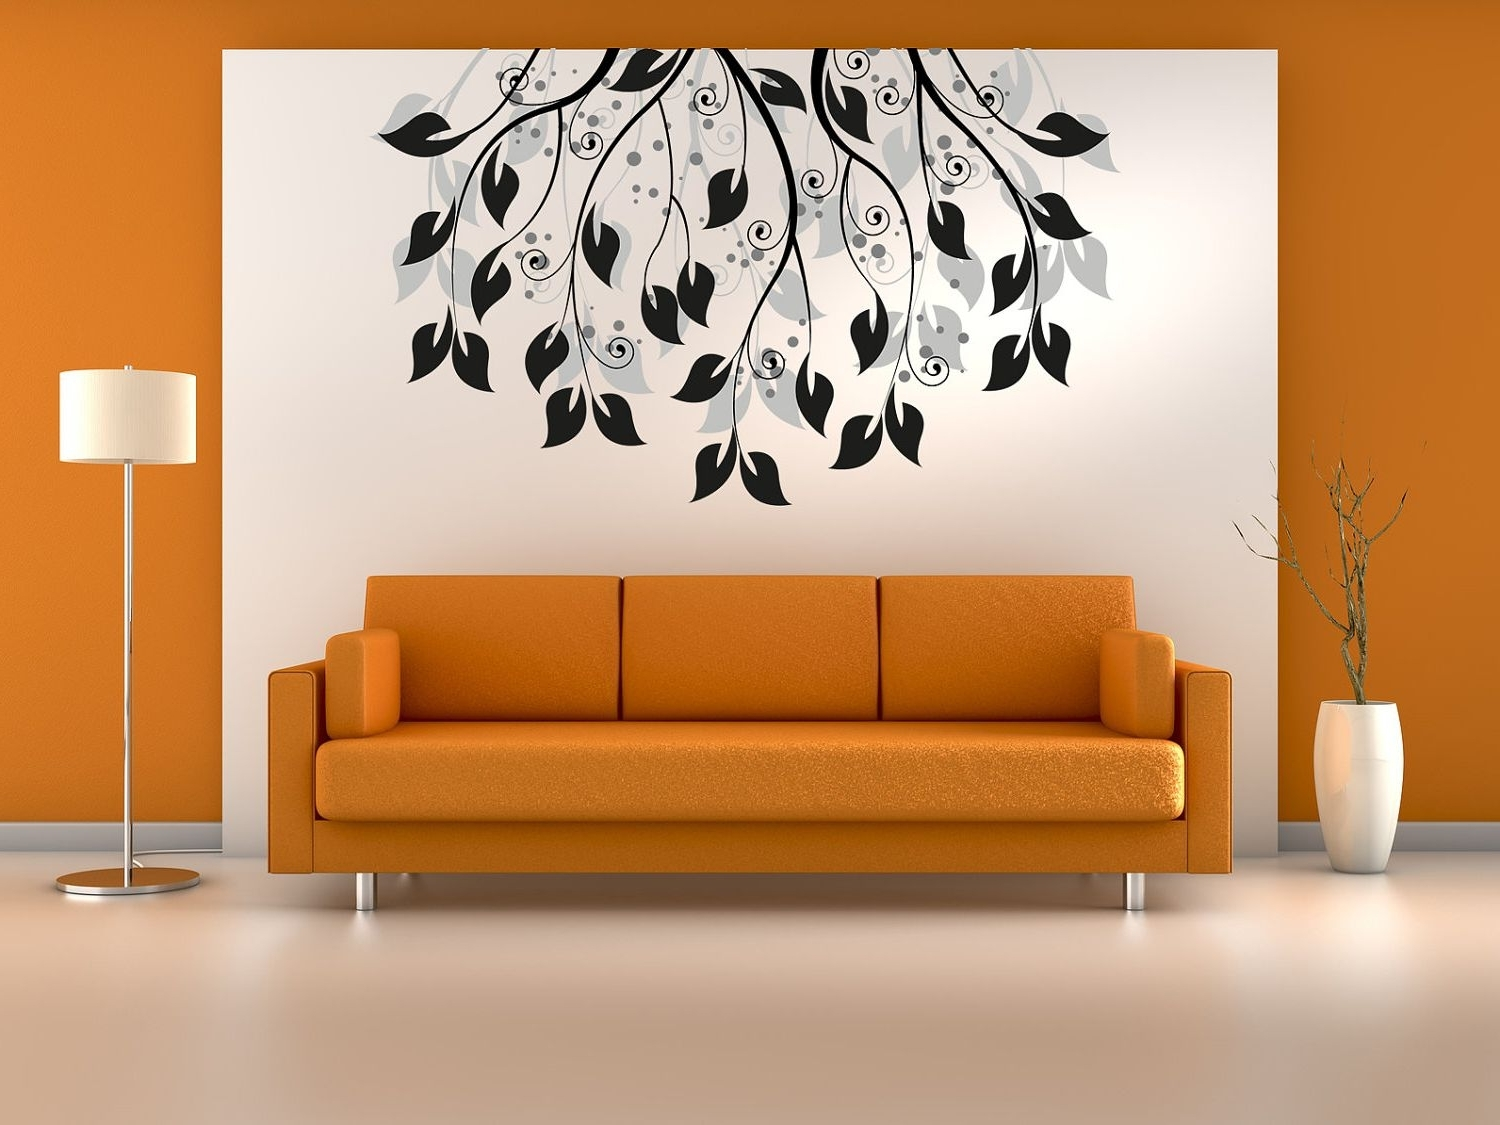 Art For Walls Regarding Newest Living Room : Creative Painting Ideas For Walls With White Wall (View 4 of 20)